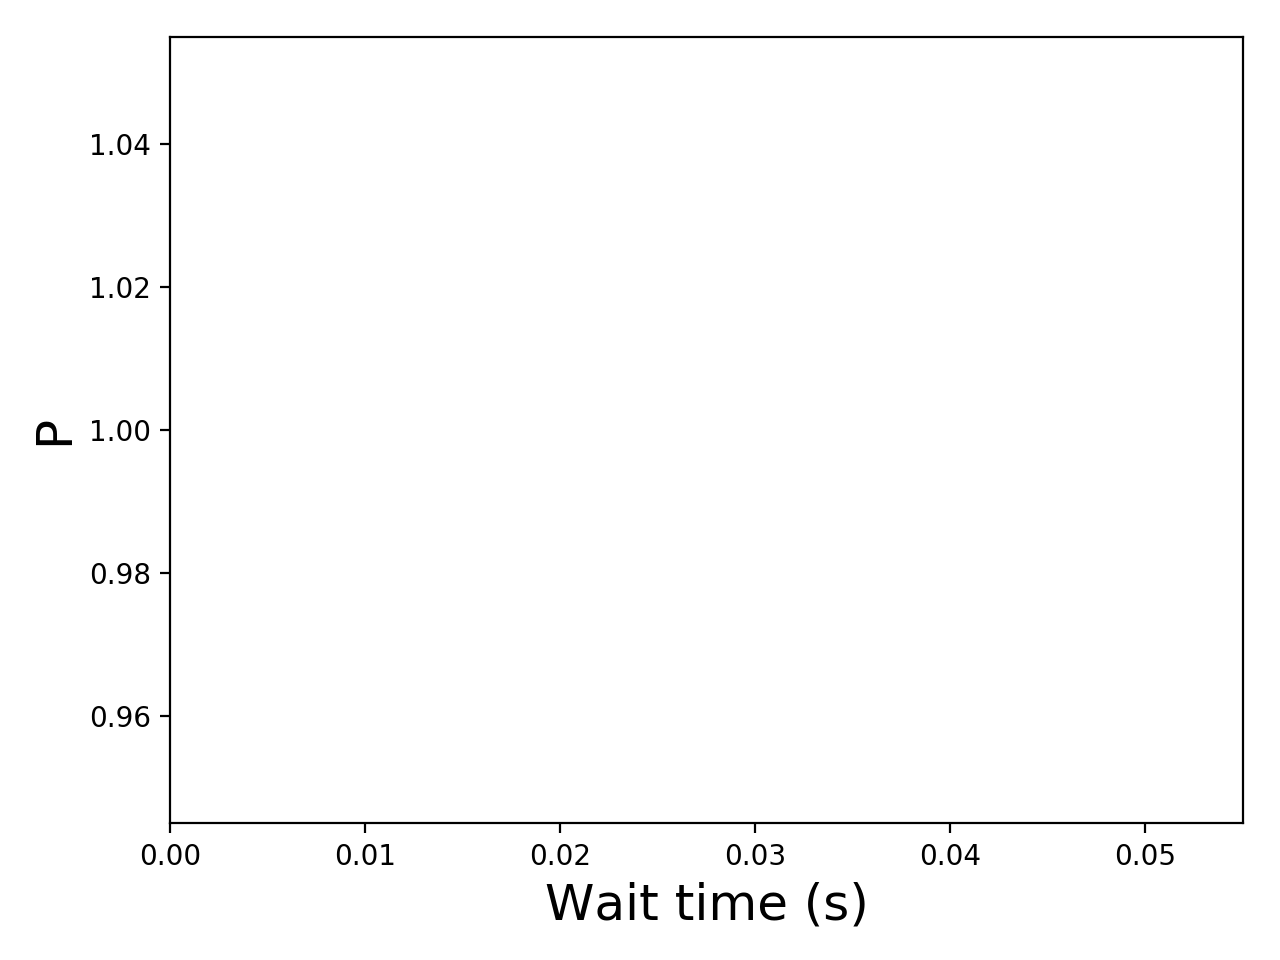 Task wait time CDF graph for the alibaba2018 trace.